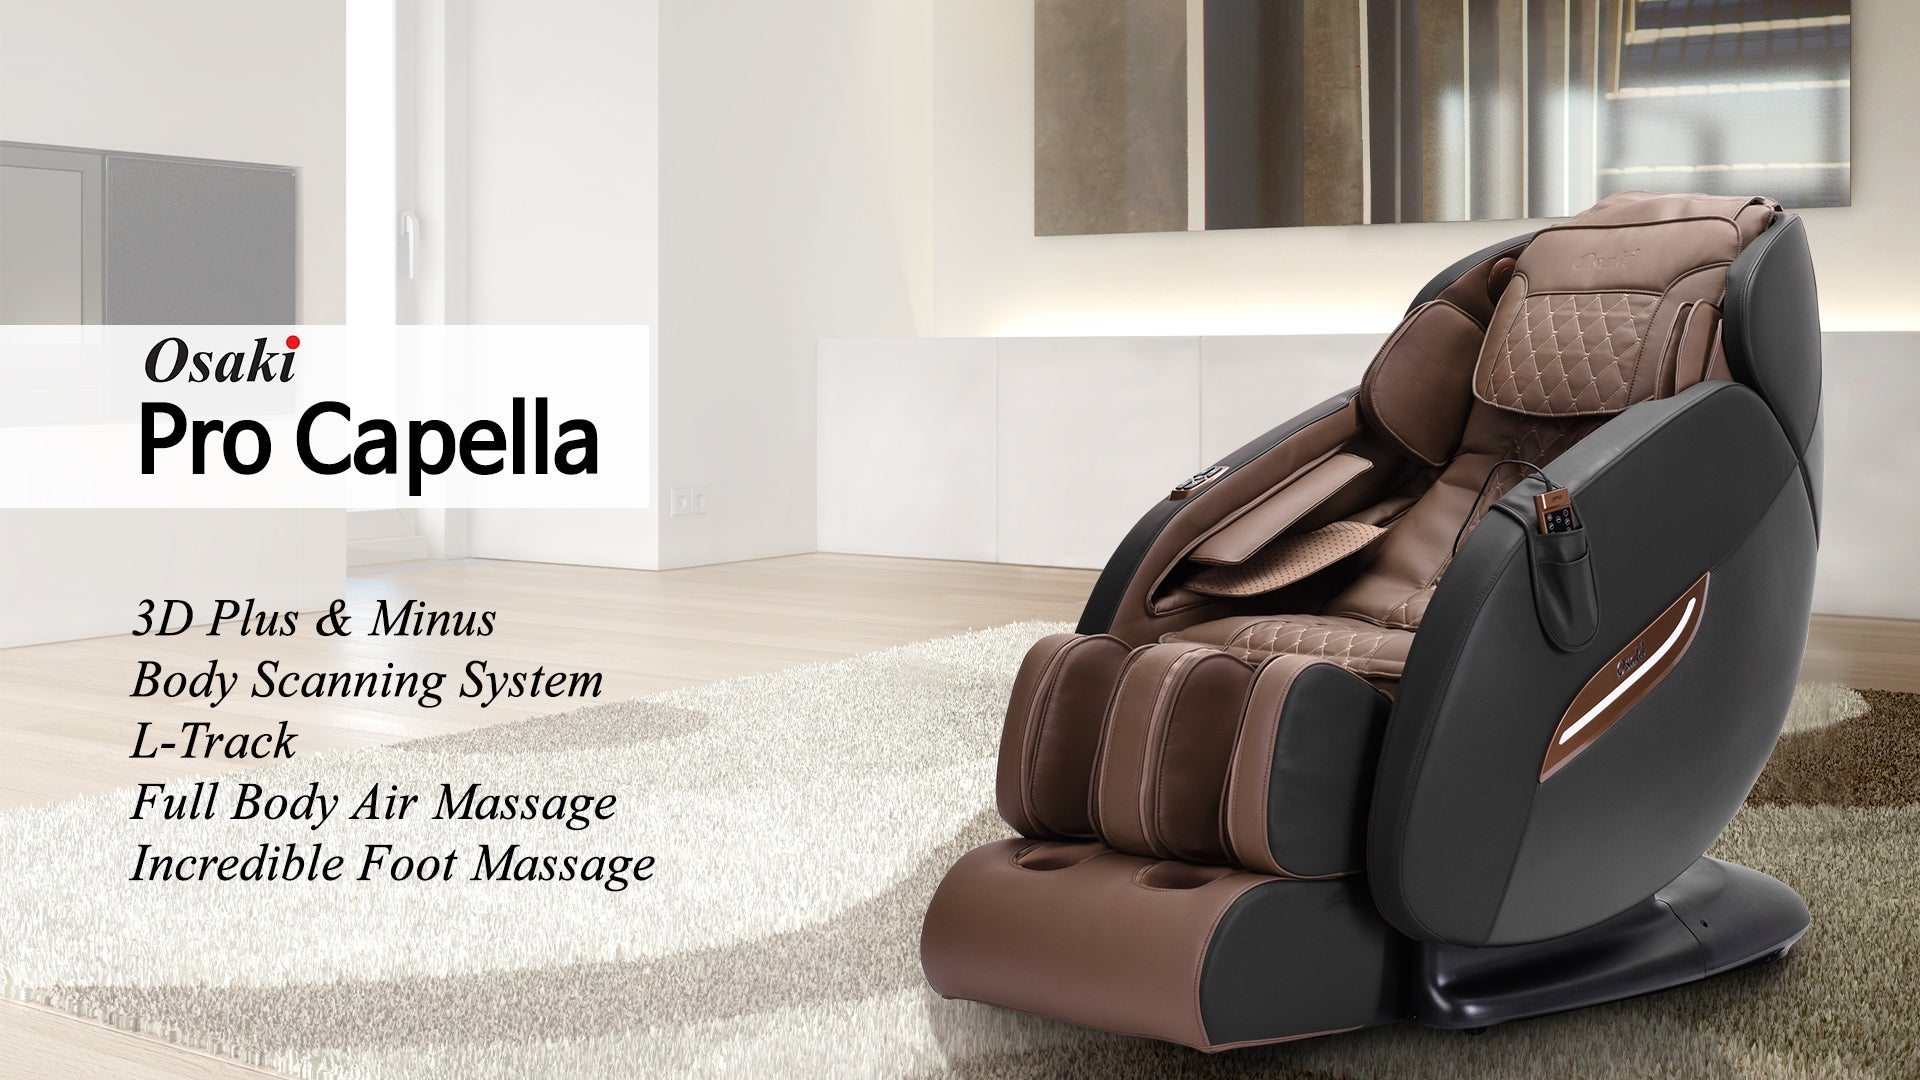 Osaki OS-Pro Capella 3D LTrack Massage Chair